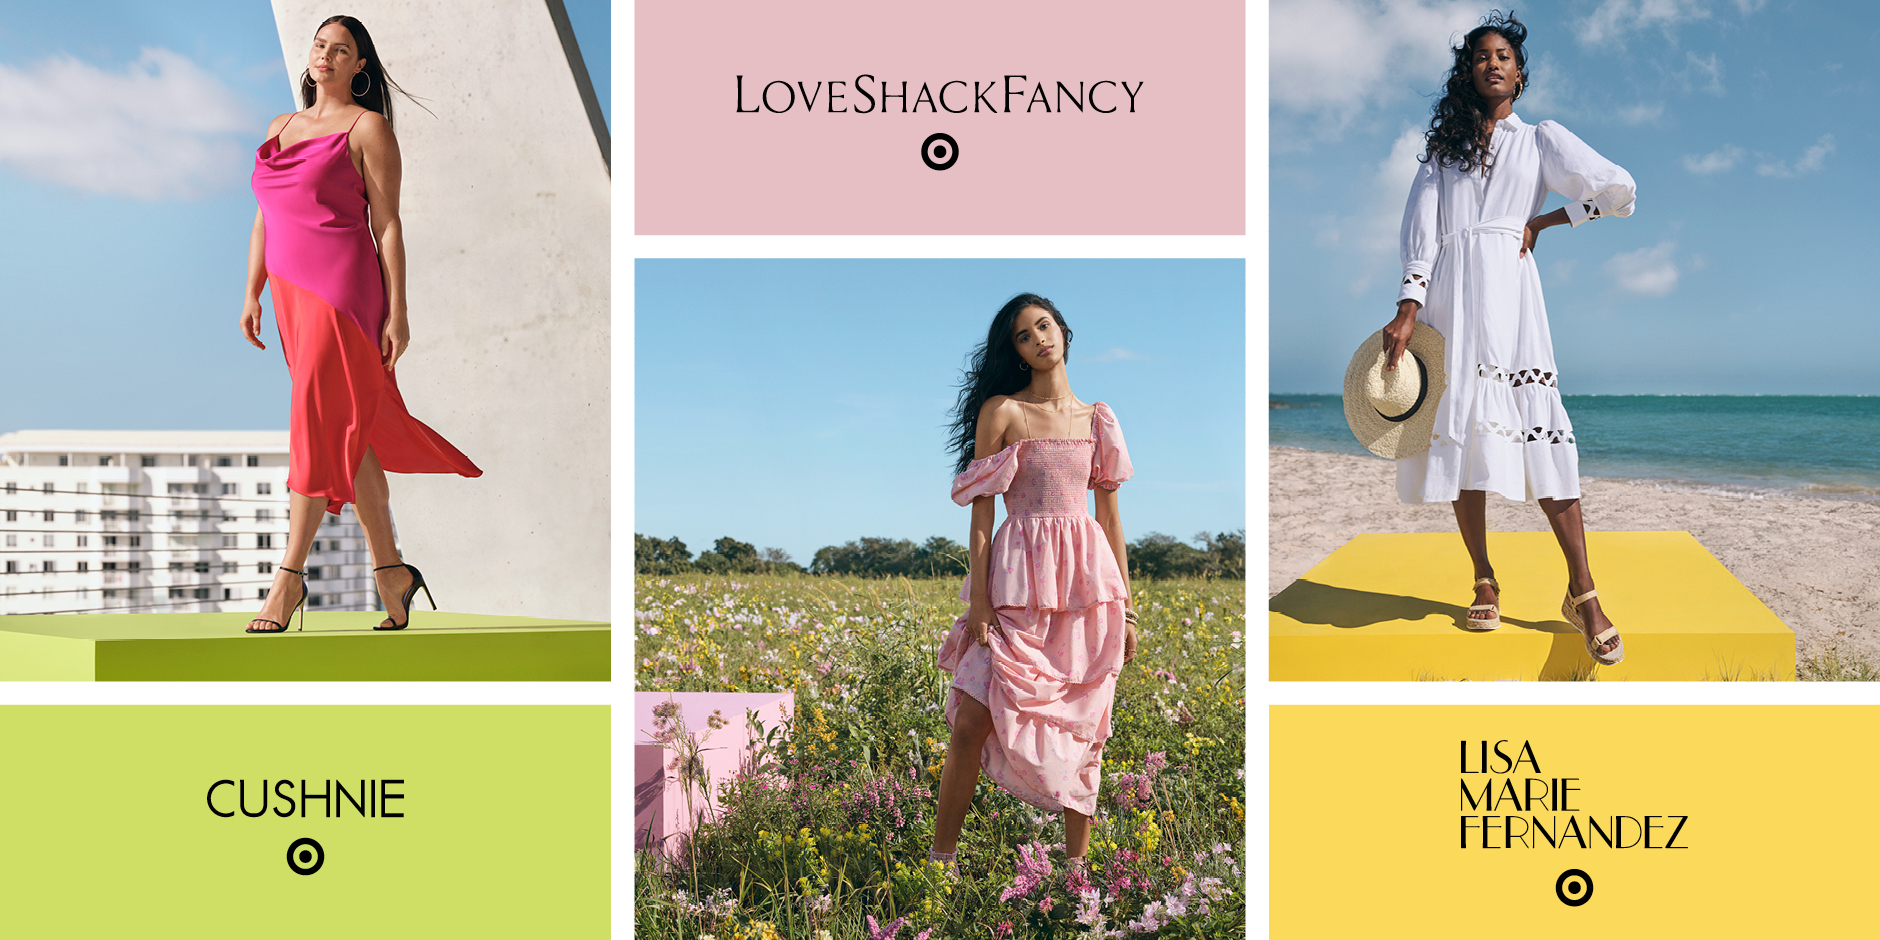 collage of three women in colorful dresses in different places, with designers' names